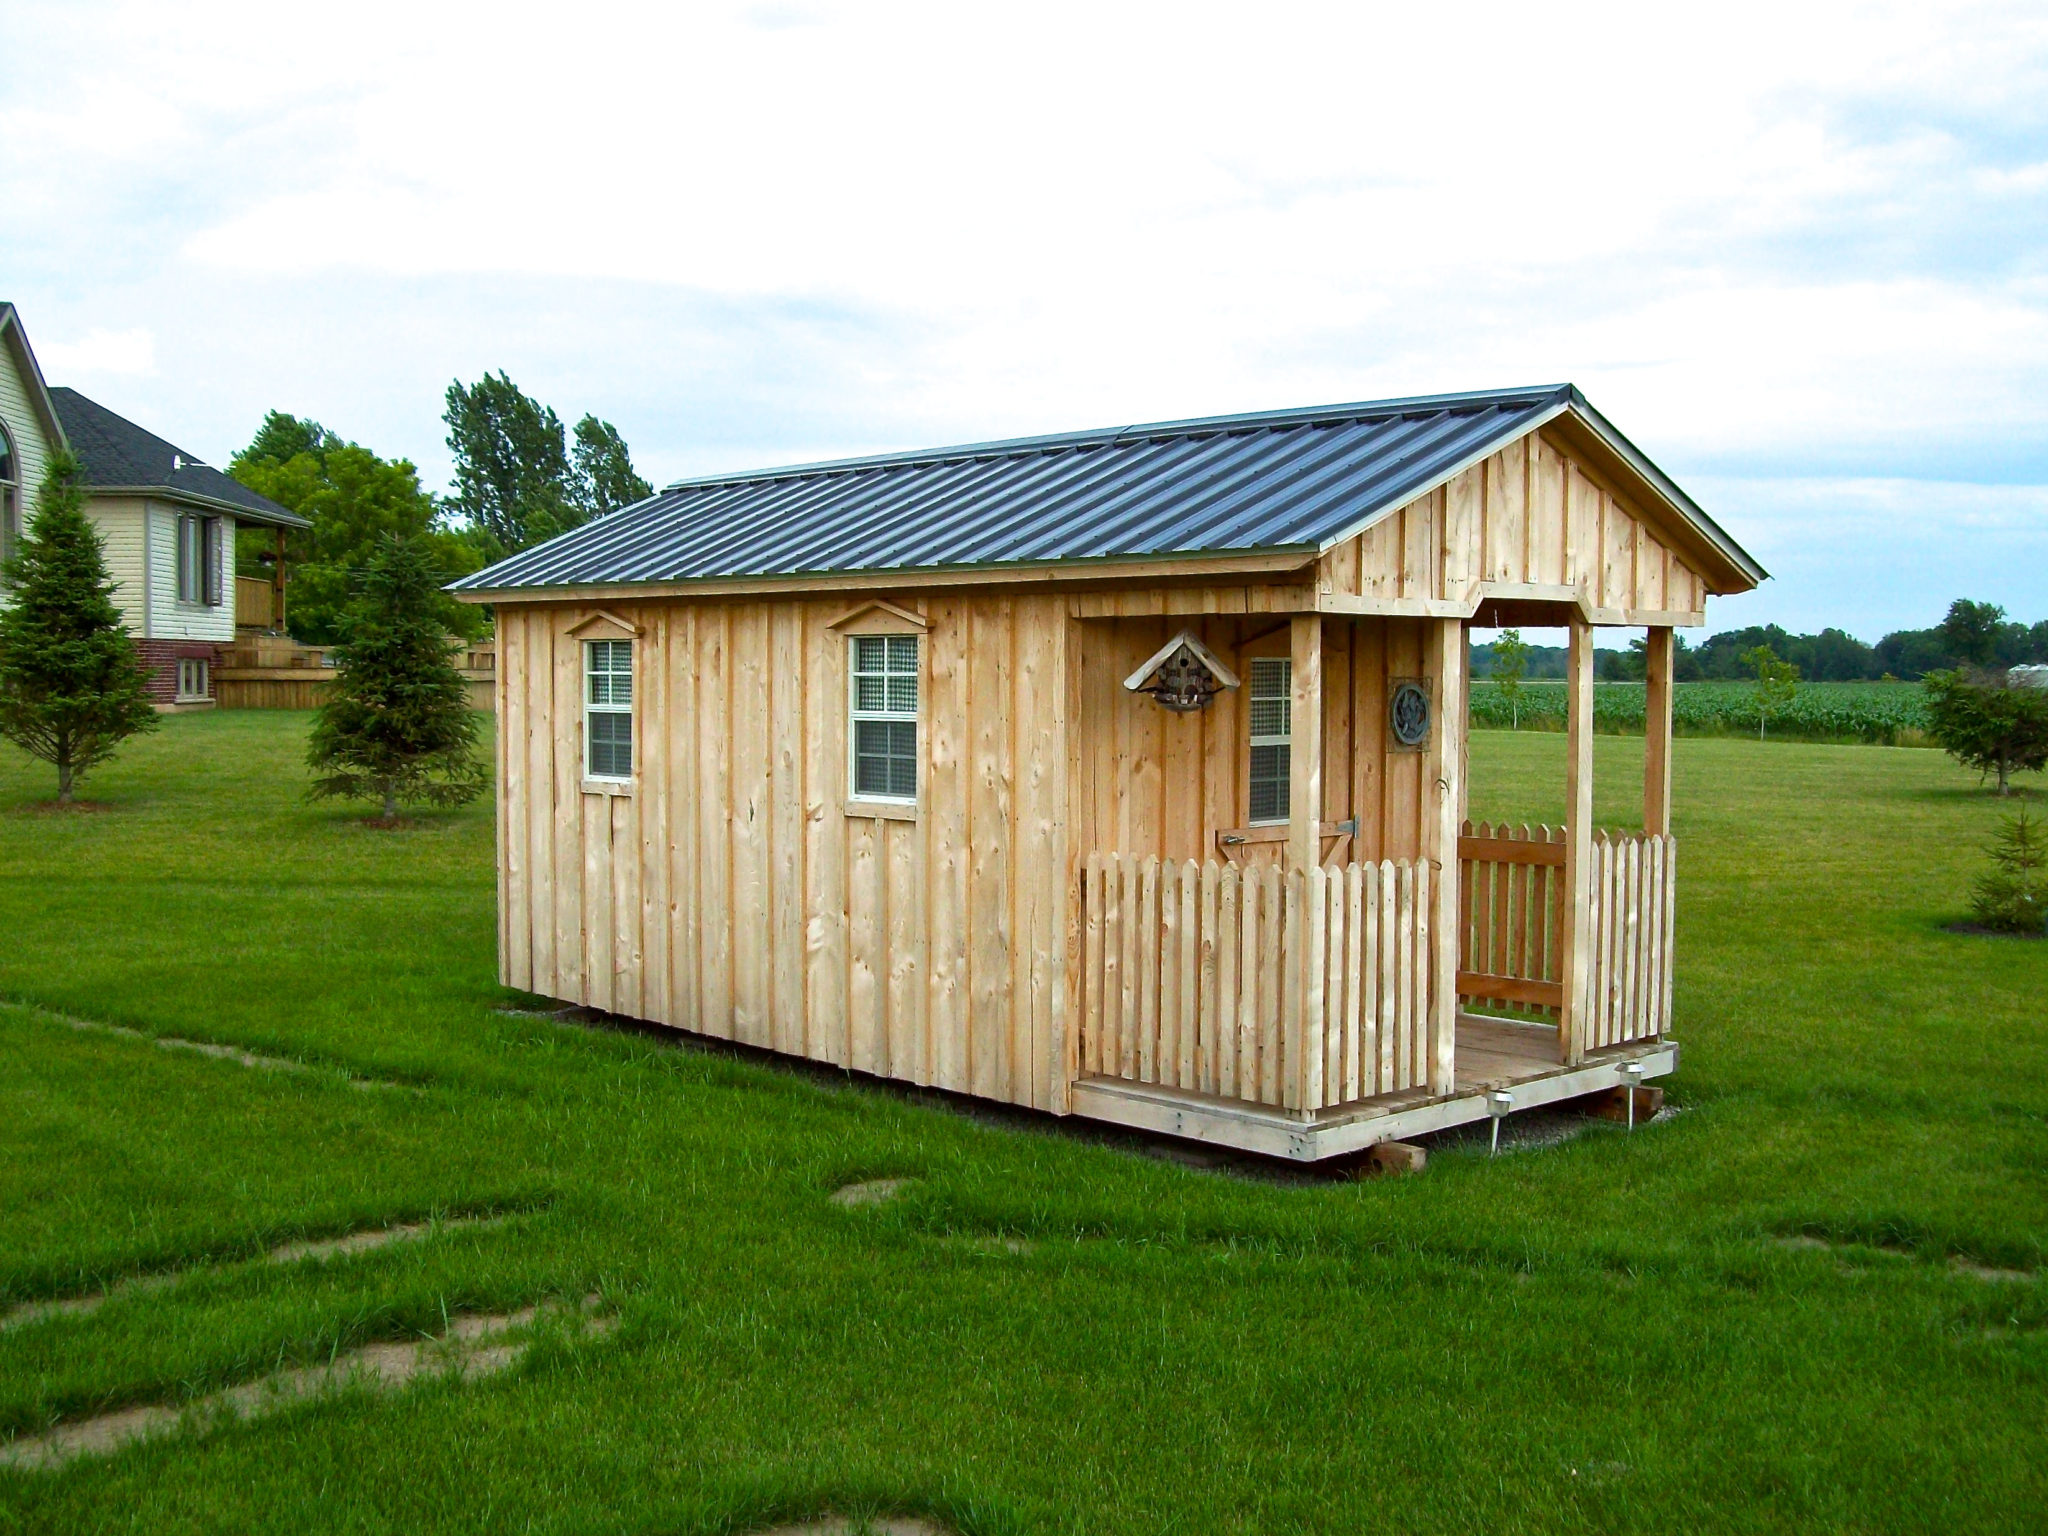 Amish Shed With Front Porch & Green Roof